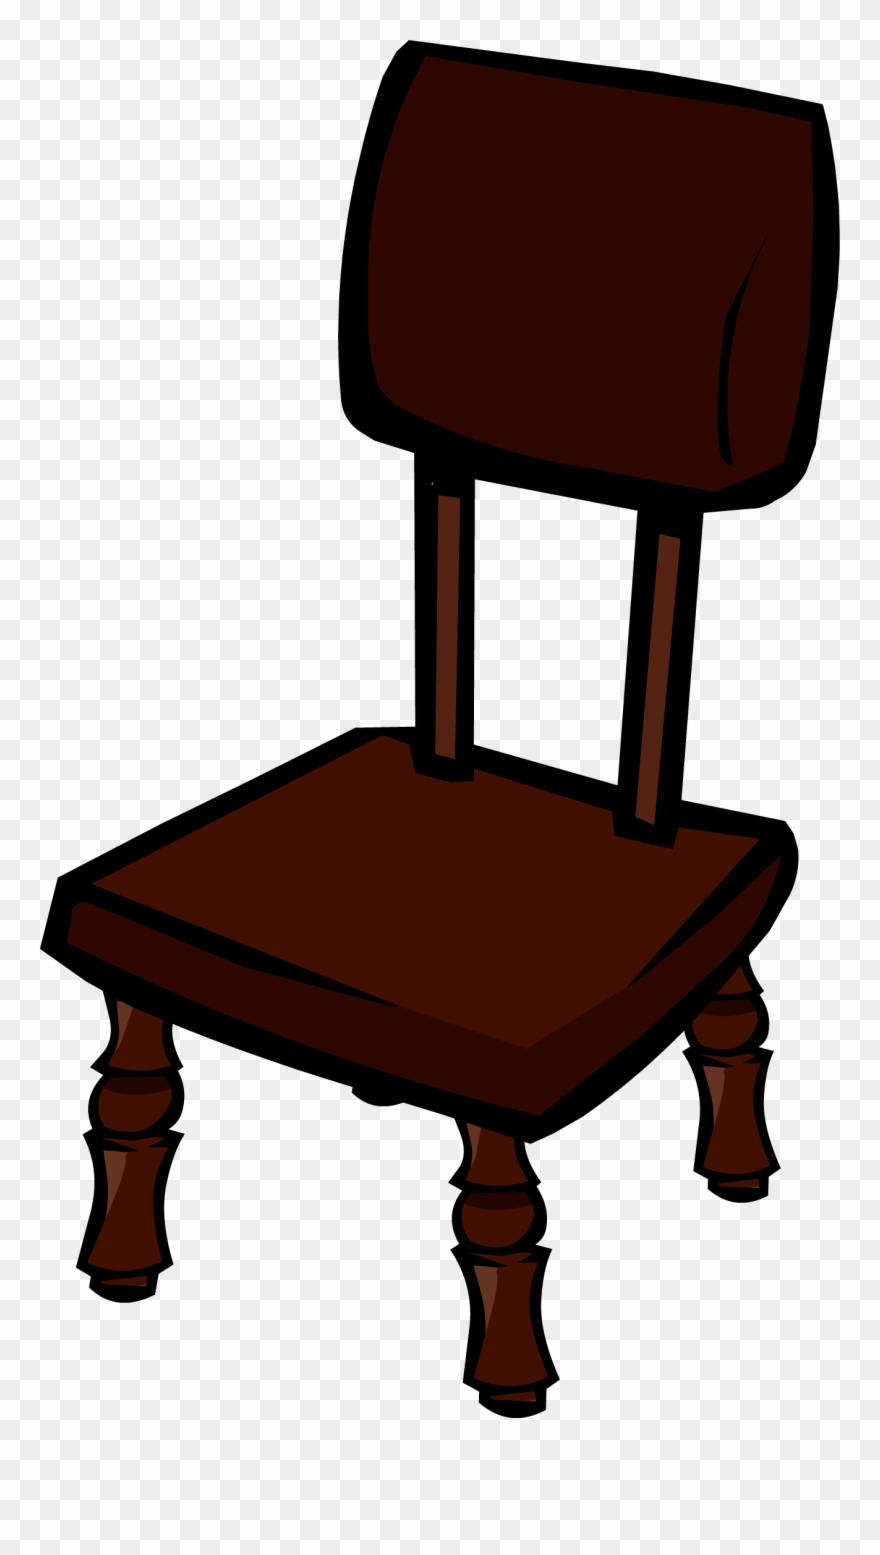 medium resolution of clipart table wooden table club penguin chair furniture png download